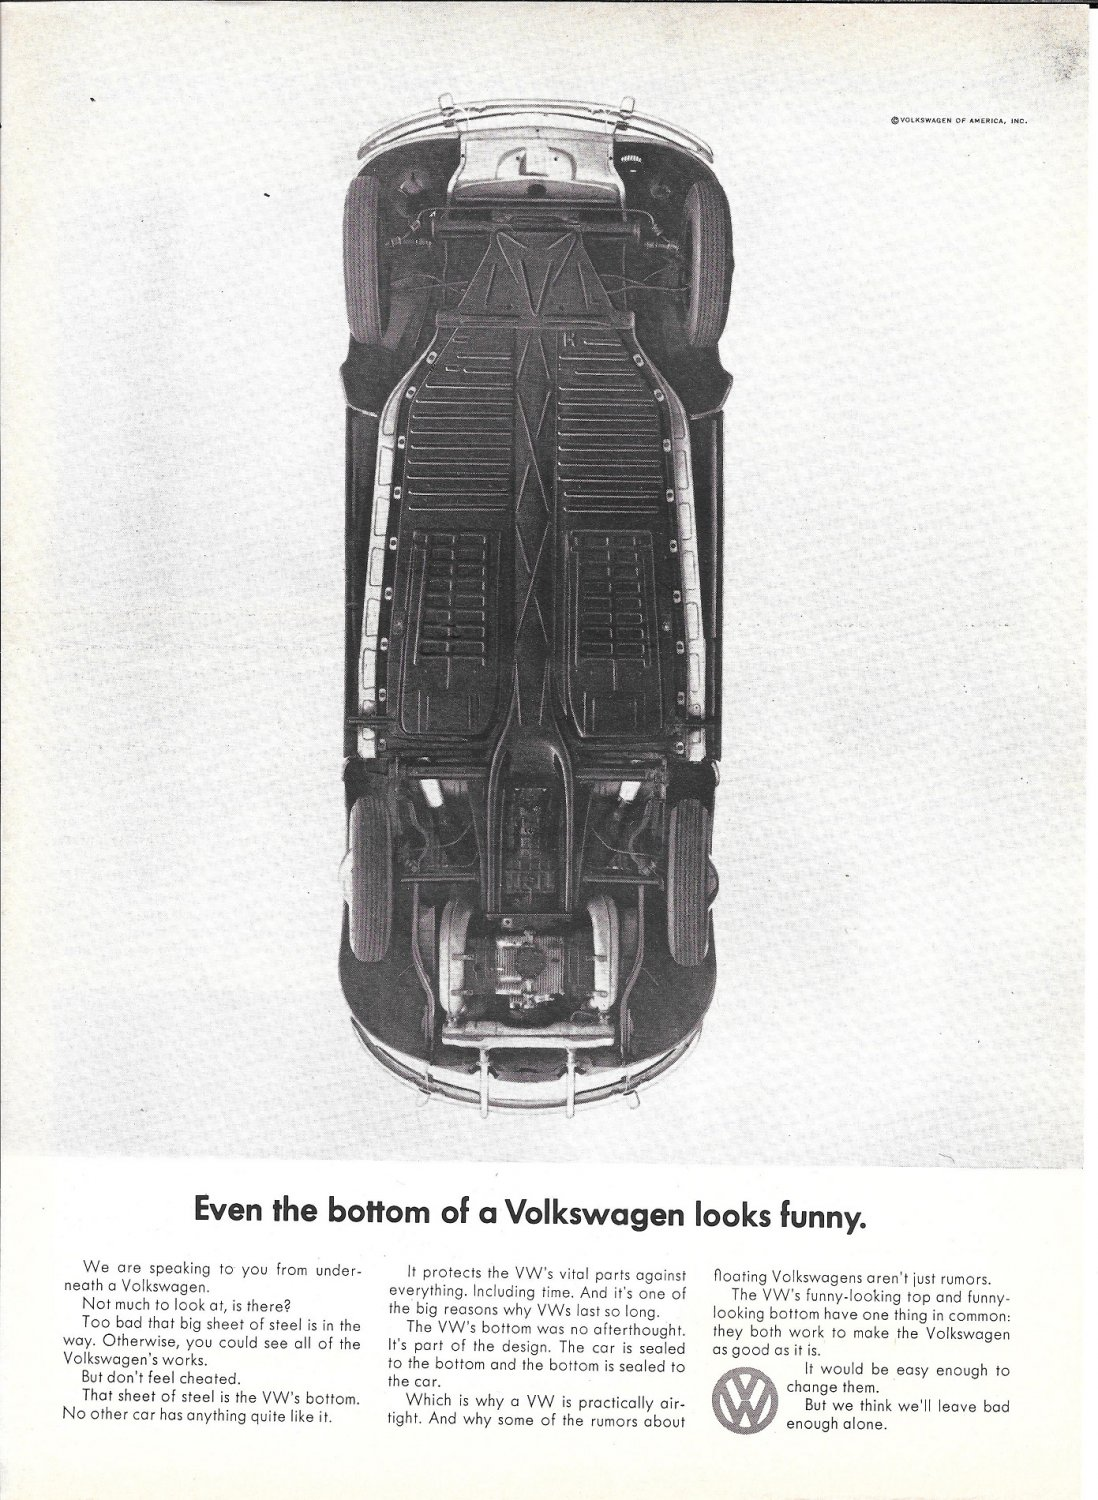 1965 Volkswagen VW Beetle Car Even The Bottom Looks Funny Ad